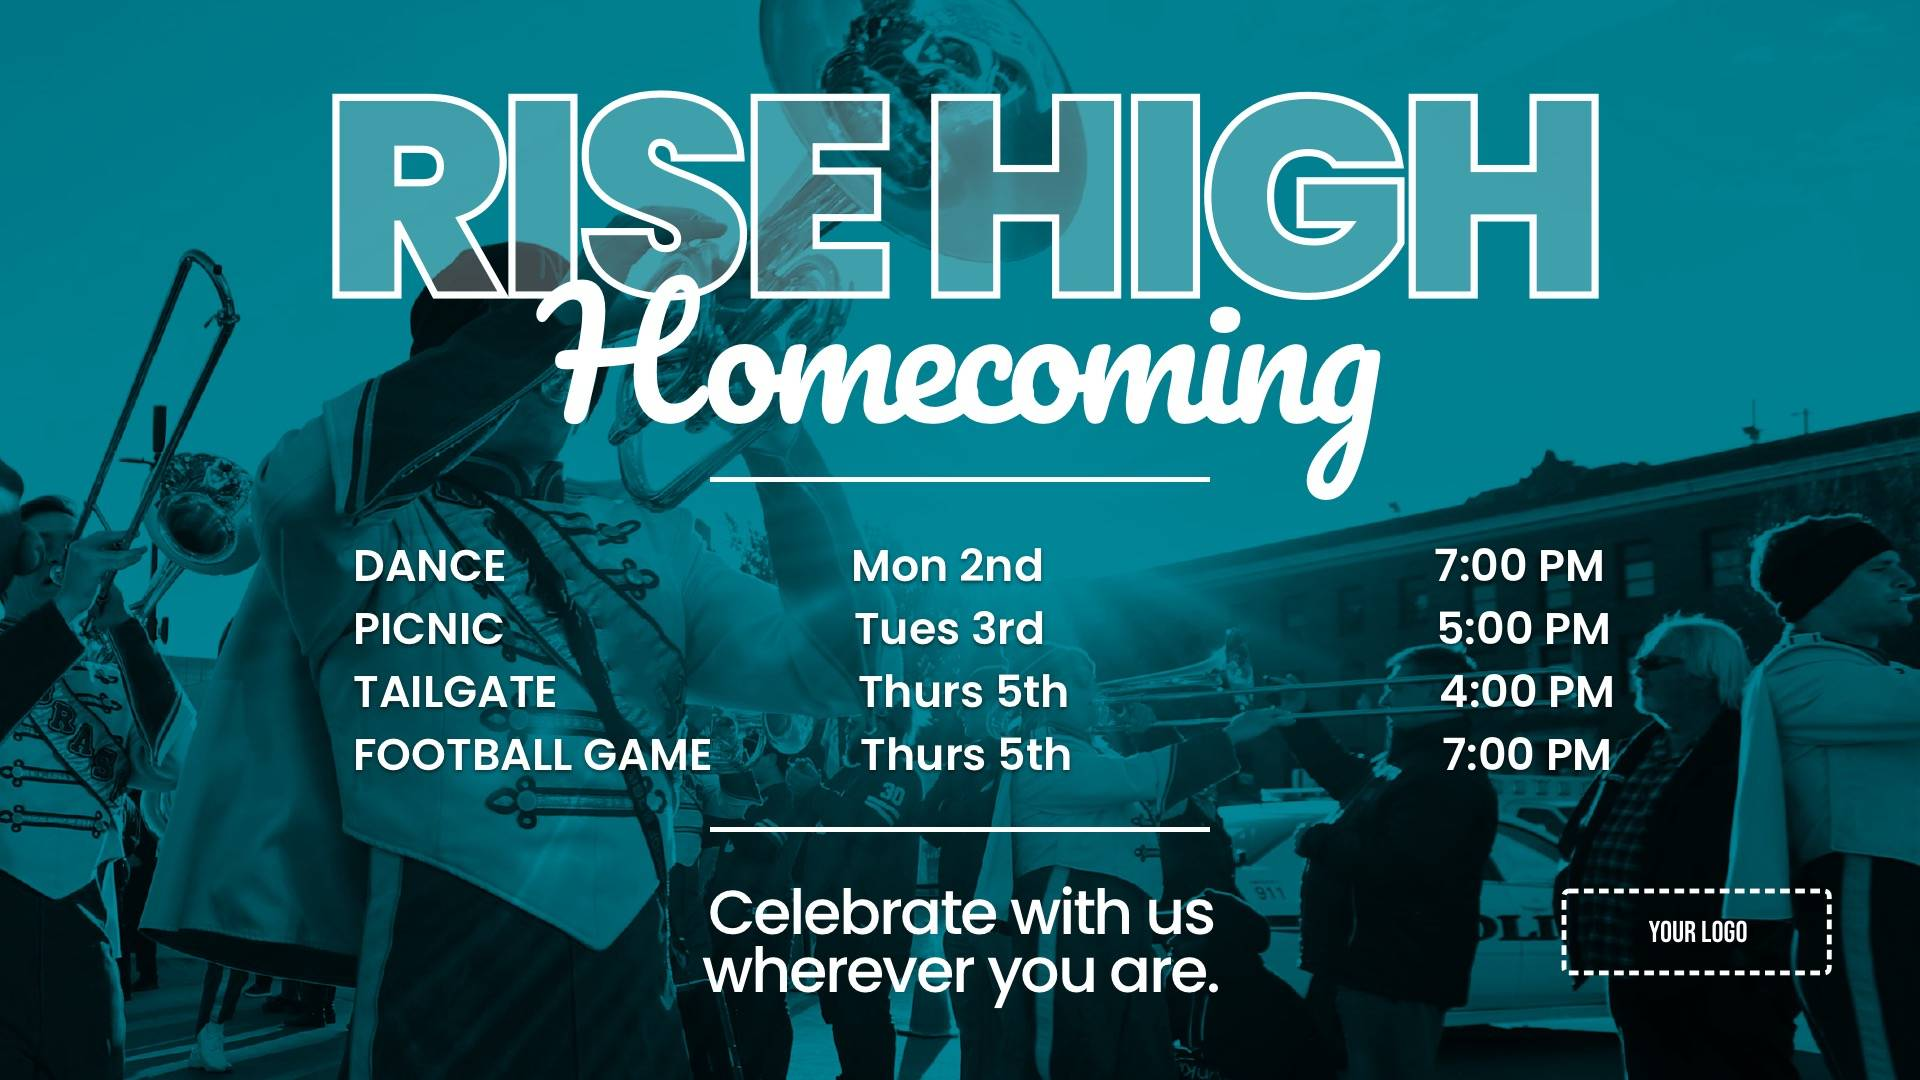 Homecoming Digital Signage Template